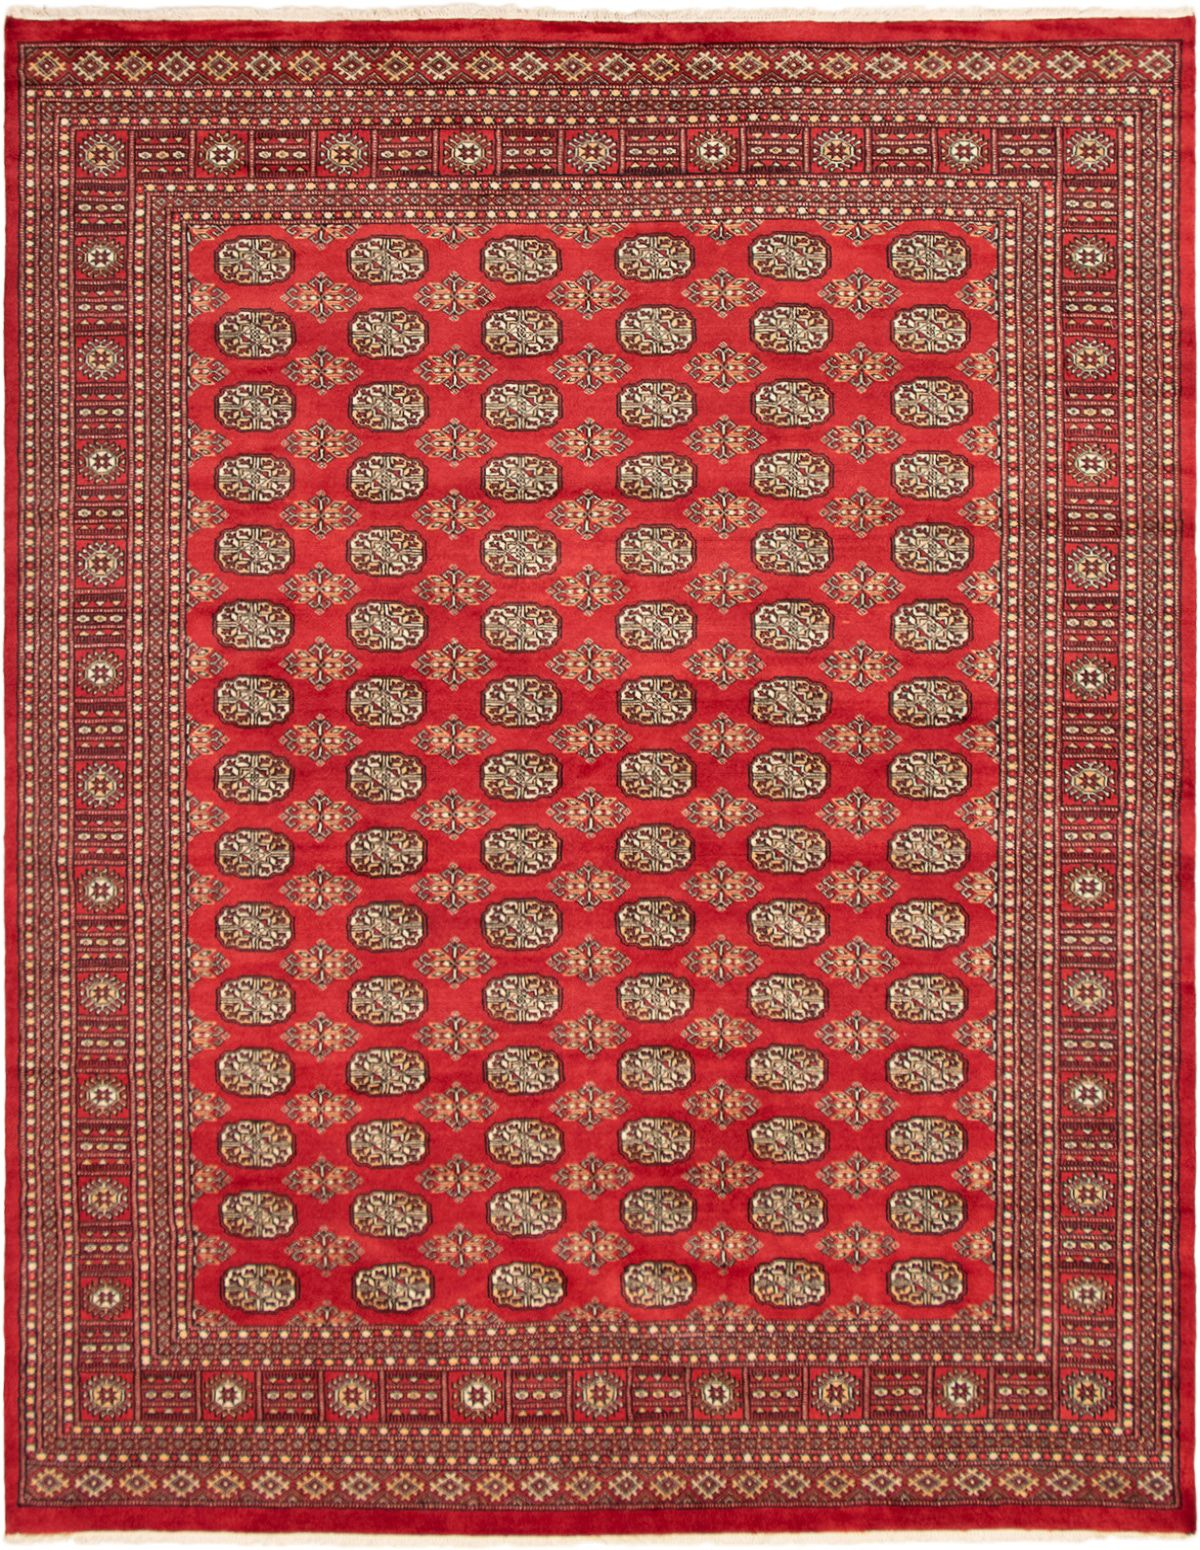 """Hand-knotted Finest Peshawar Bokhara Red Wool Rug 7'11"""" x 10'1"""" Size: 7'11"""" x 10'1"""""""